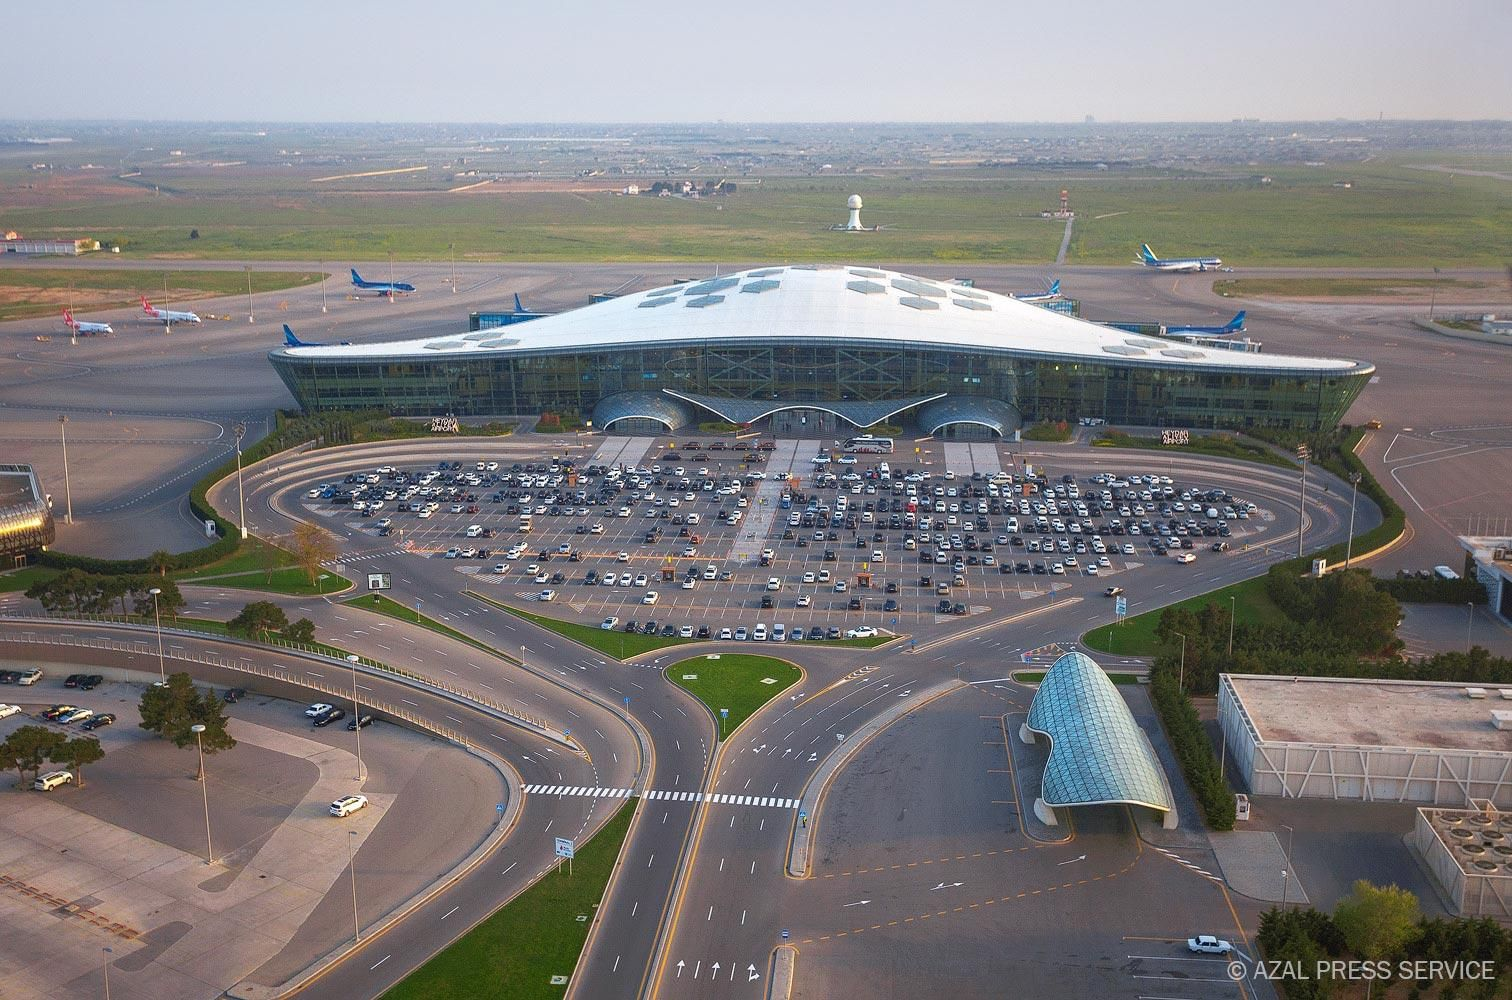 L´Aéroport international Heydar Aliyev de Bakou obtient 5 étoiles au classement « COVID-19 Safety Rating » de Skytrax